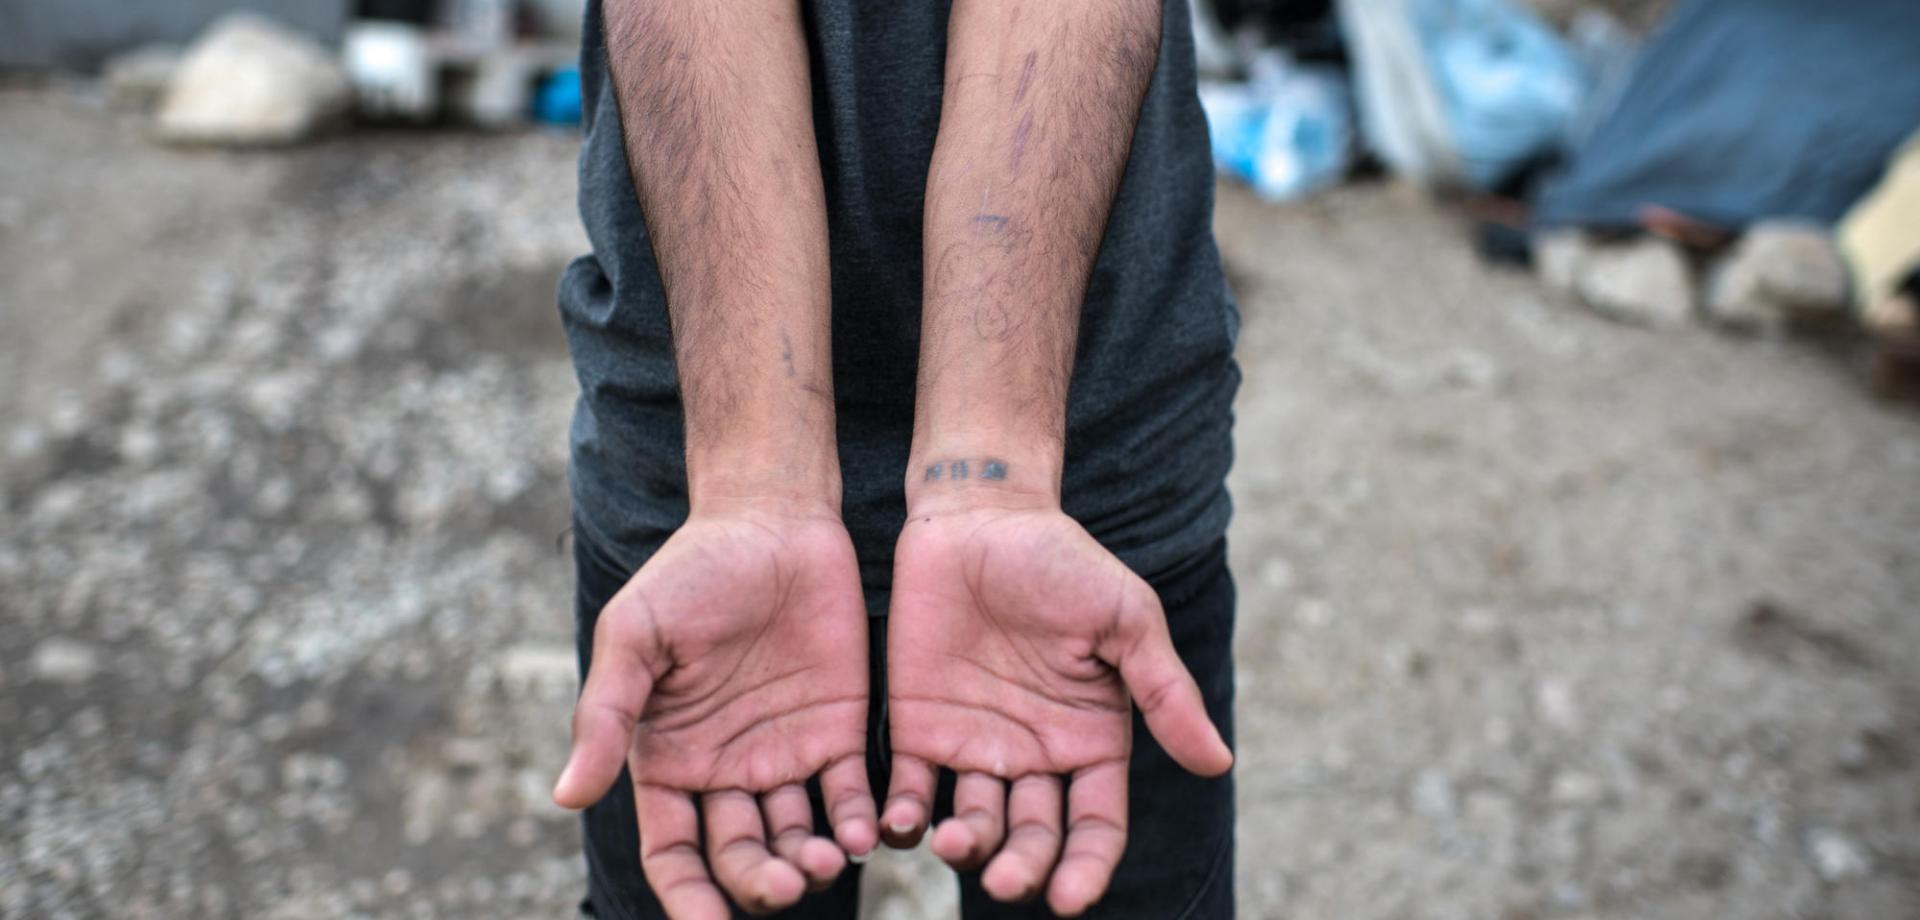 A Kurdish man shows his injuries. His family of seven fled Syria after the bombing of their city.